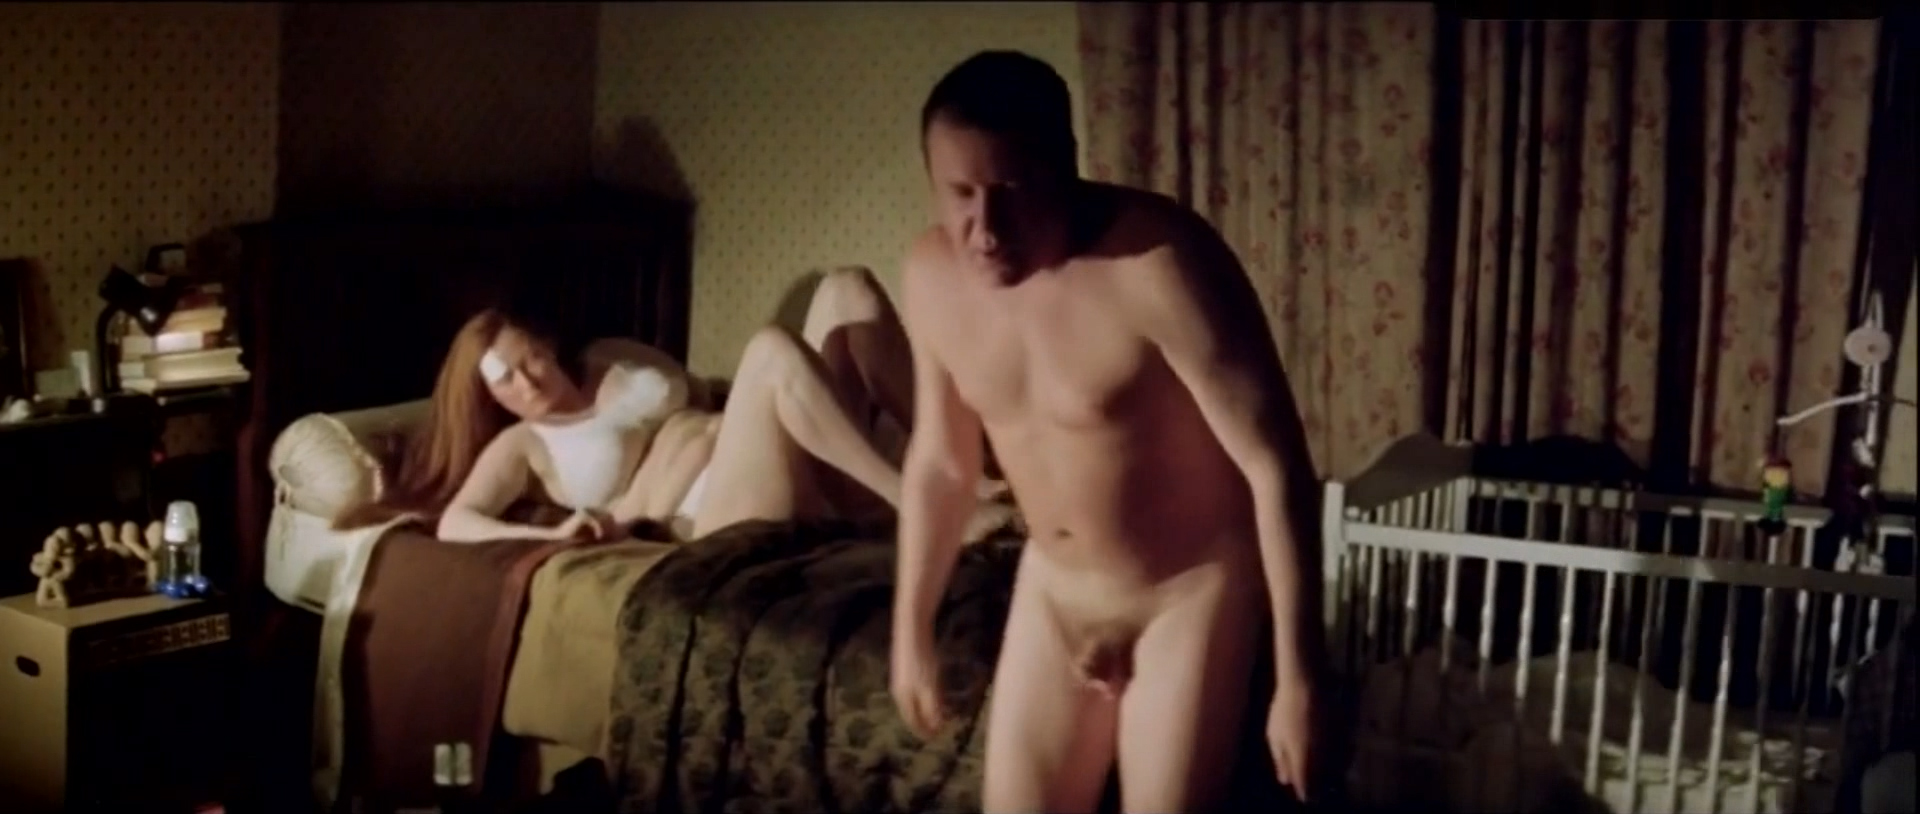 Swinton nude pics tilda excited too with